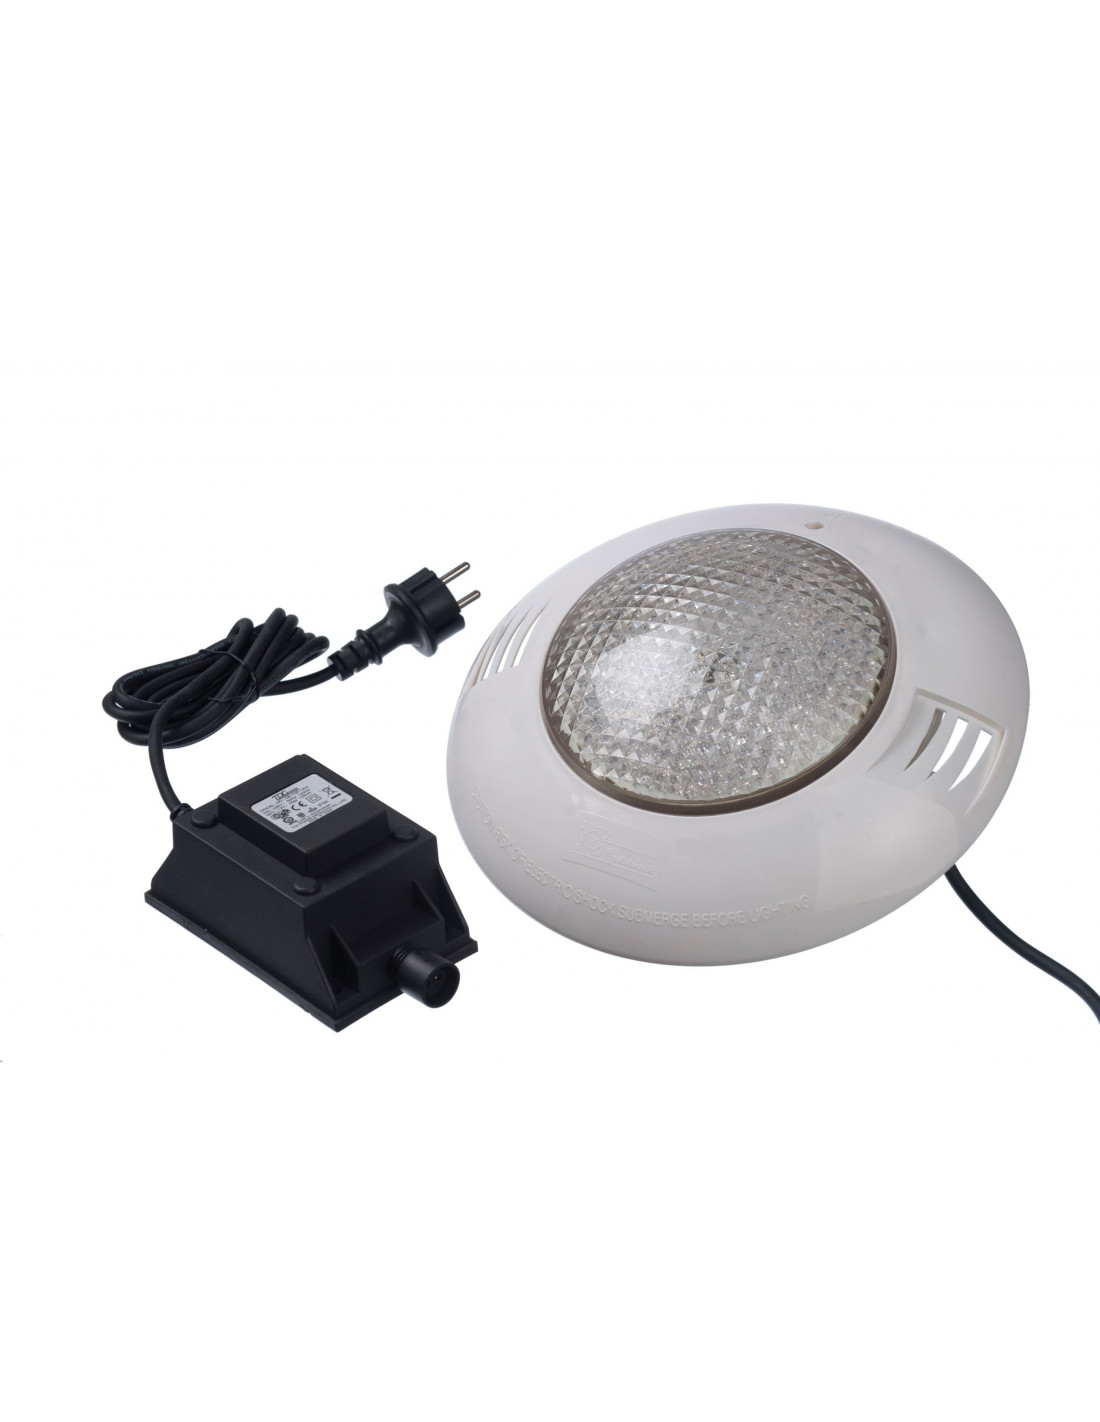 Projecteur piscine hors sol bois led ubbink for Spot led piscine hors sol